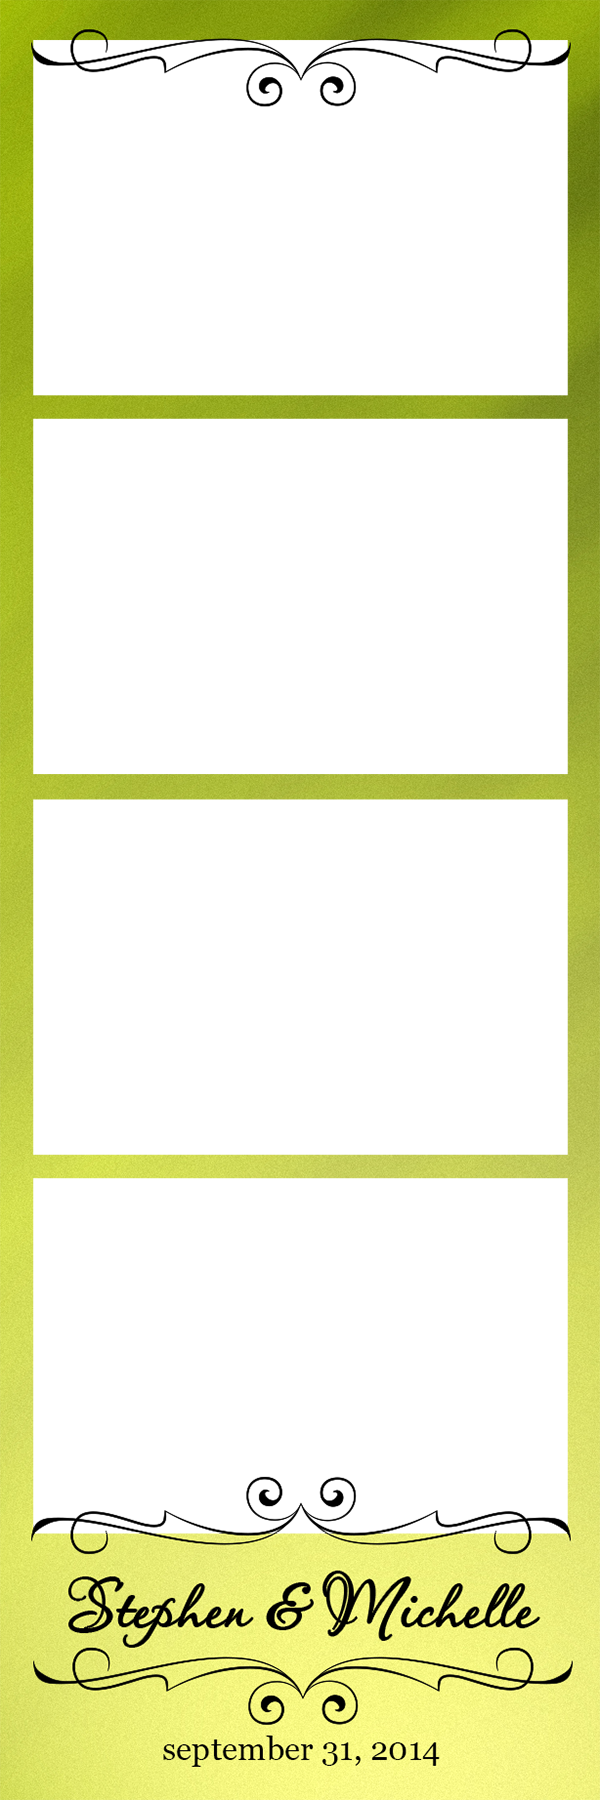 015B_LightGreen_4UP_D1.png